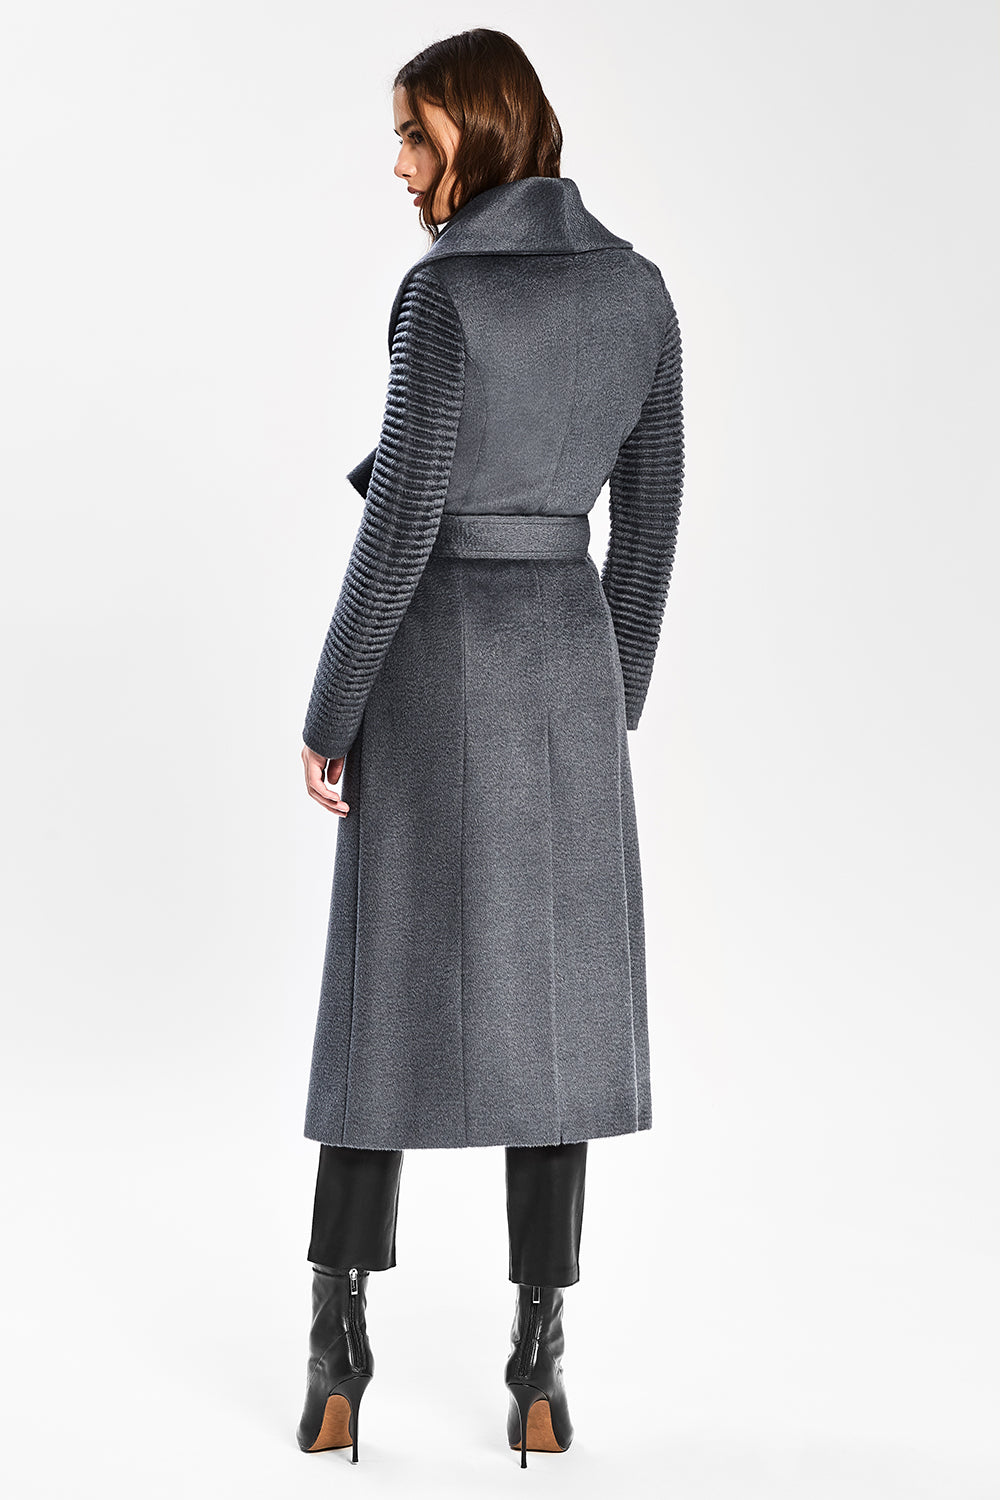 Sentaler Suri Alpaca Long Shawl Collar Wrap Coat with Ribbed Sleeves featured in Suri Alpaca and available in Charcoal. Seen from back.